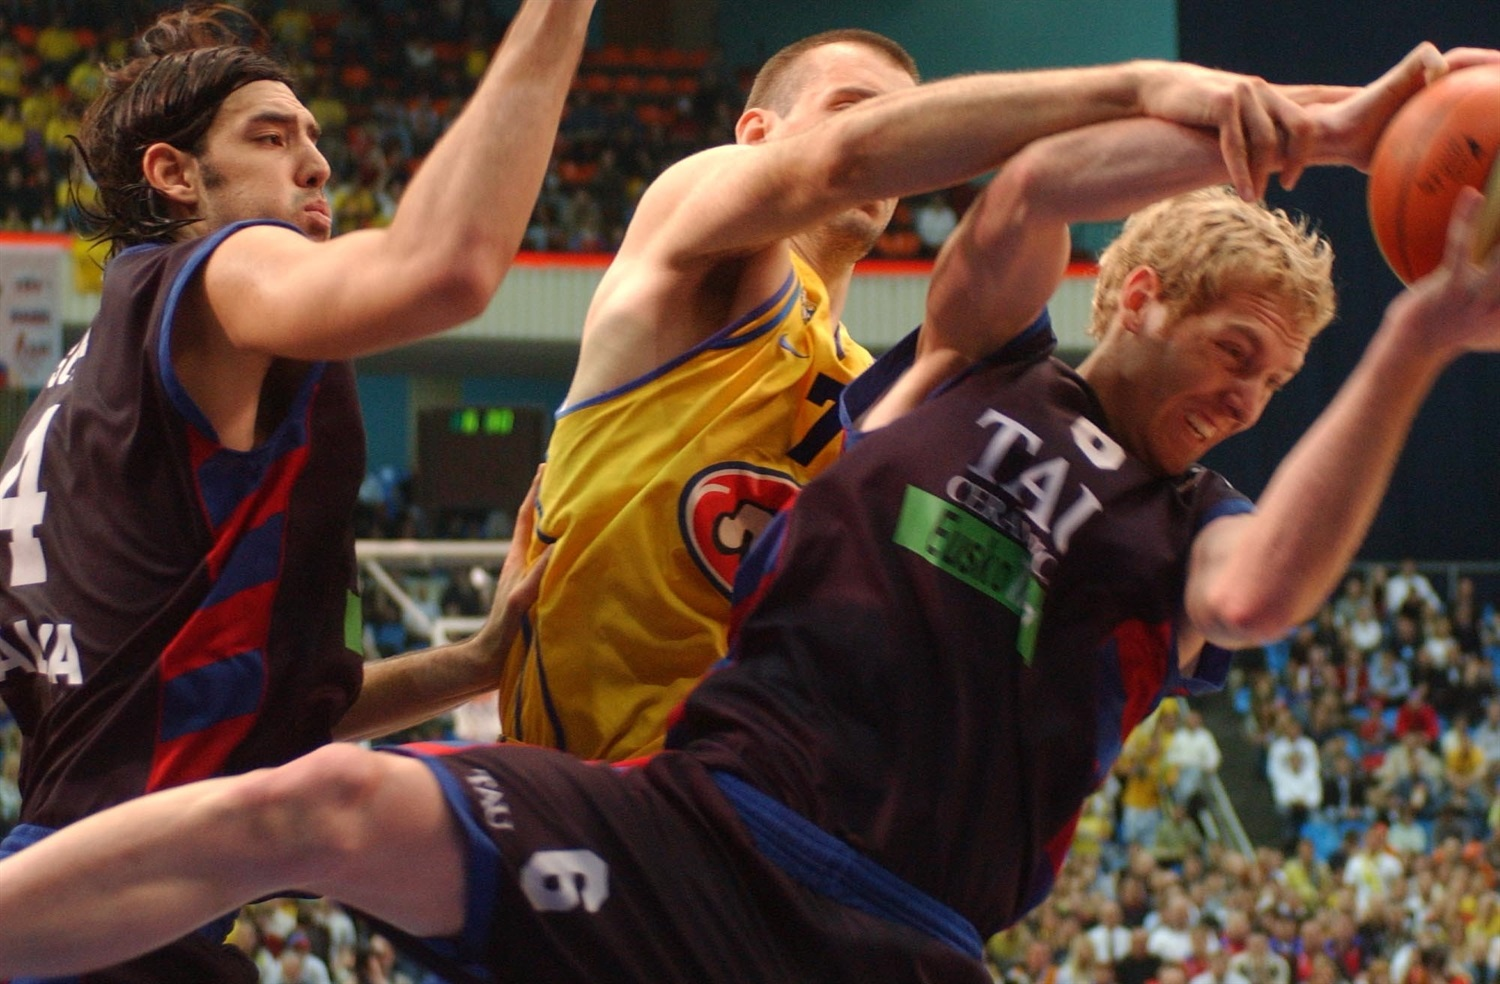 Travis Hansen - Tau Ceramica - Final Four Moscow 2005 - EB04